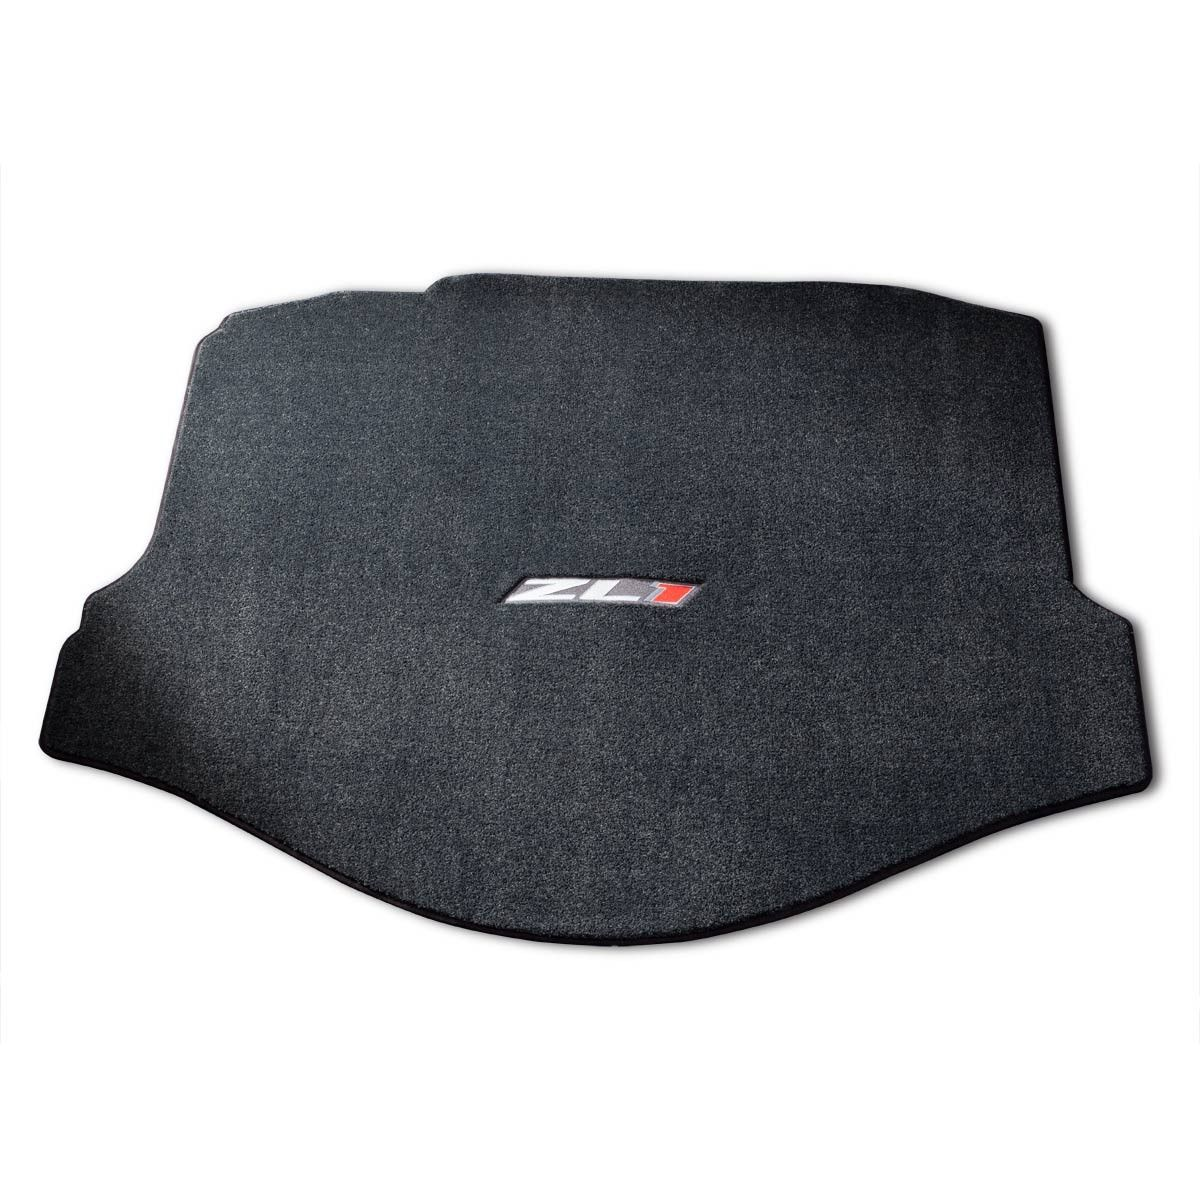 Can T Have The Floor Mats Without The Trunk Mat Camaro Accessories Camaro Camaro Zl1